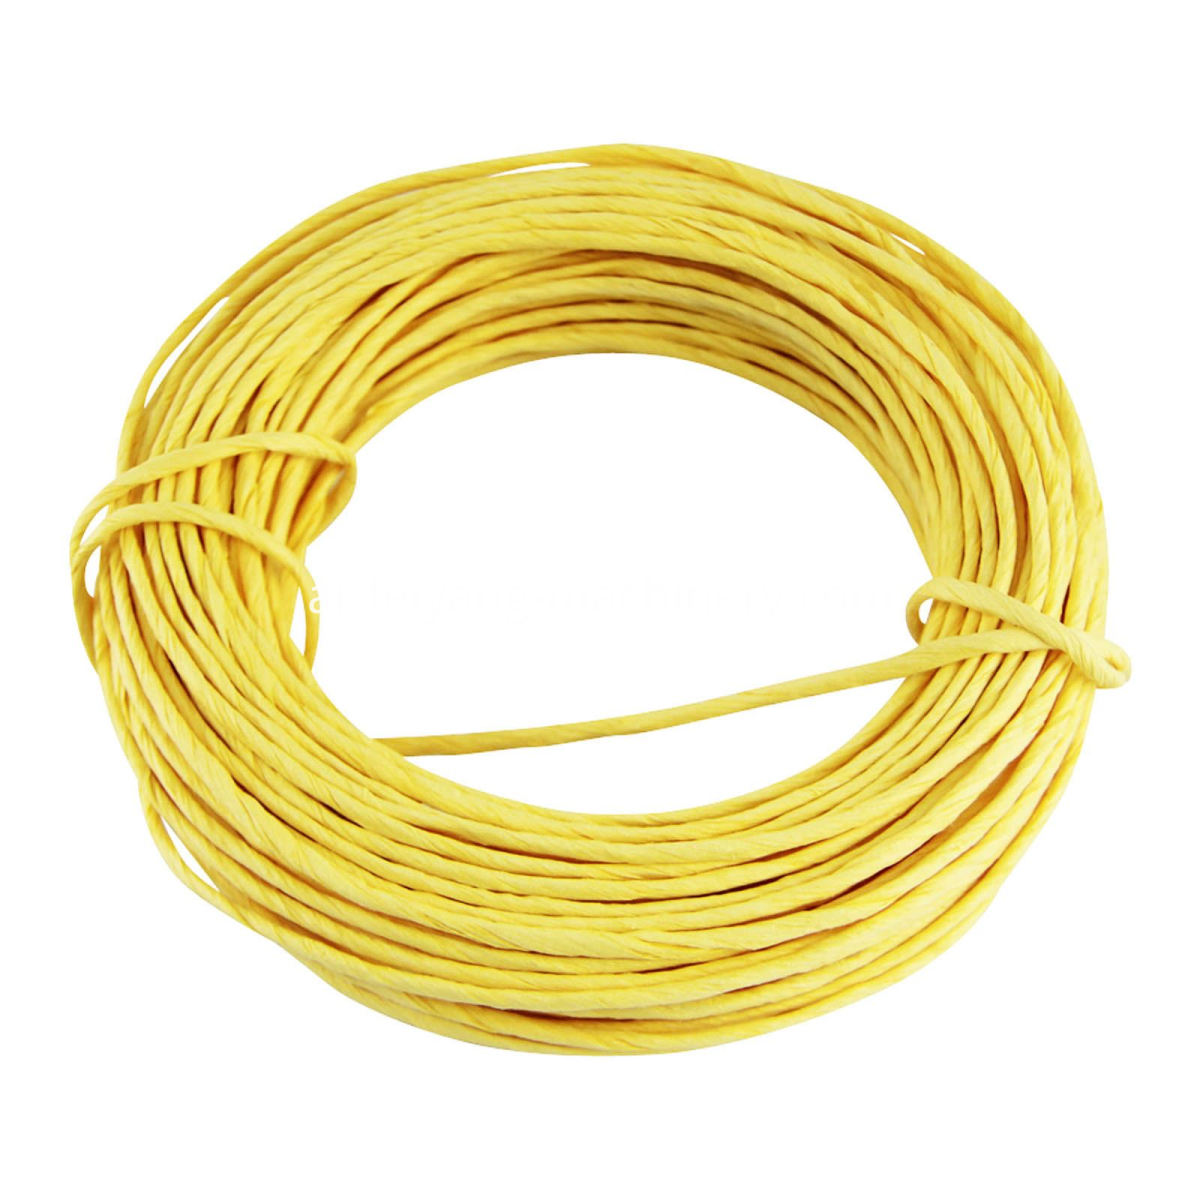 yellow color twisted paper cord